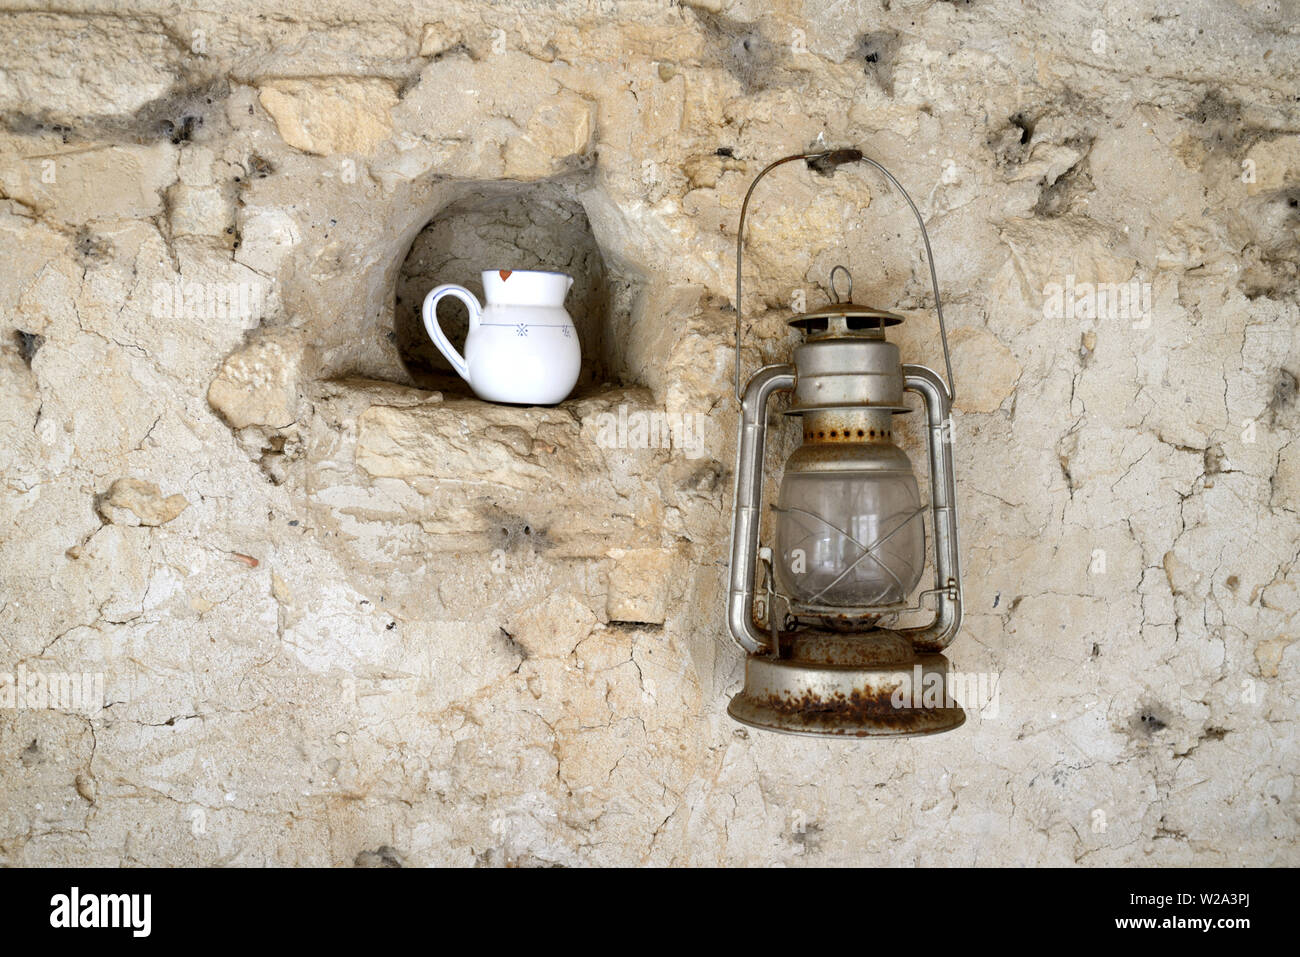 Old or Vintage Oil Lamp Hanging on Wall & Milk Jug in Niche Still Life Against Old Stone Wall - Stock Image